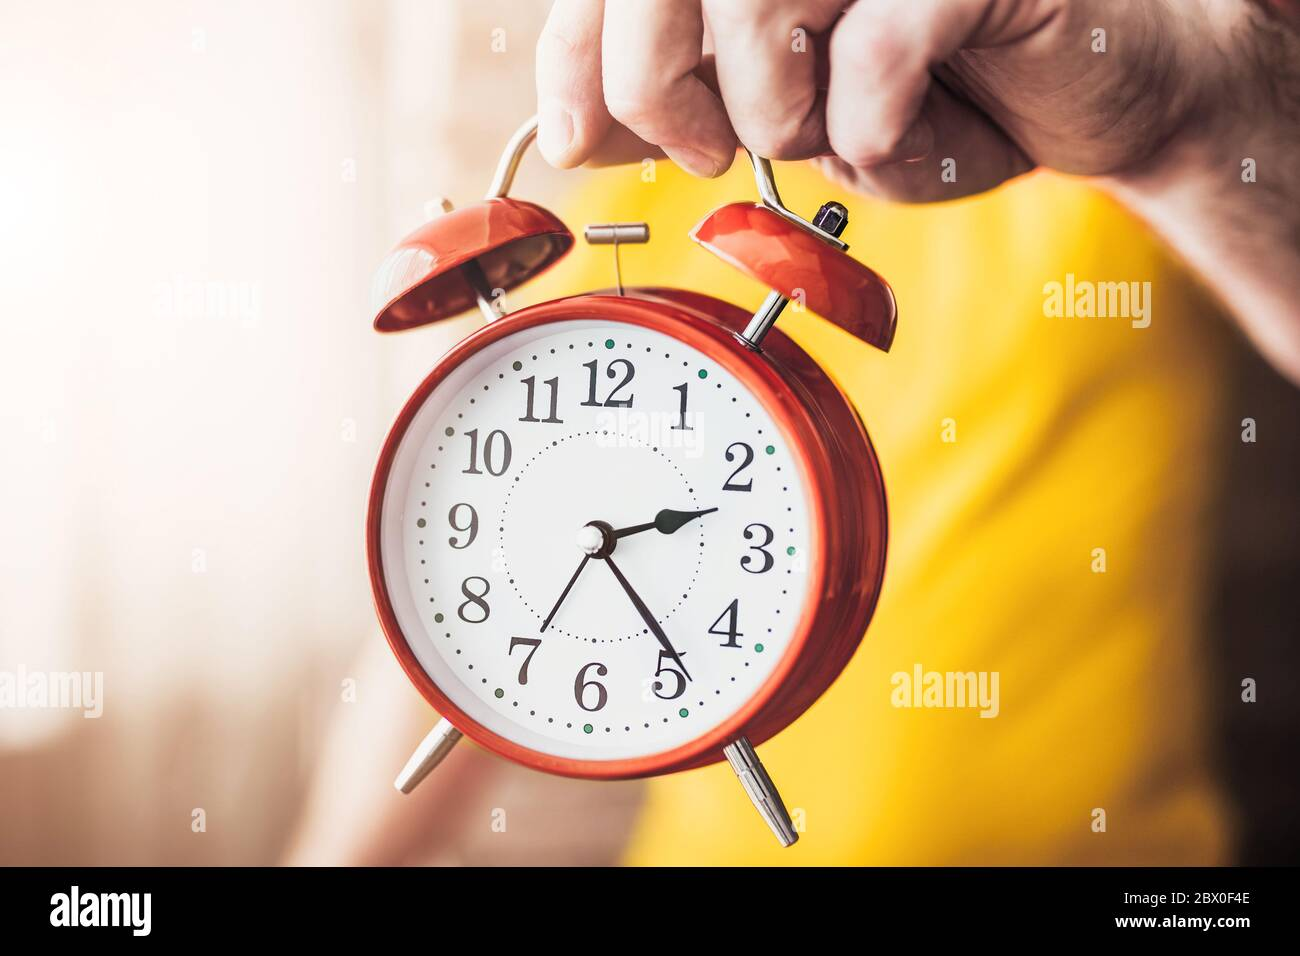 Cause time, rest time - A man keeps an alarm clock and shows time - concept - do not waste time in vain Stock Photo